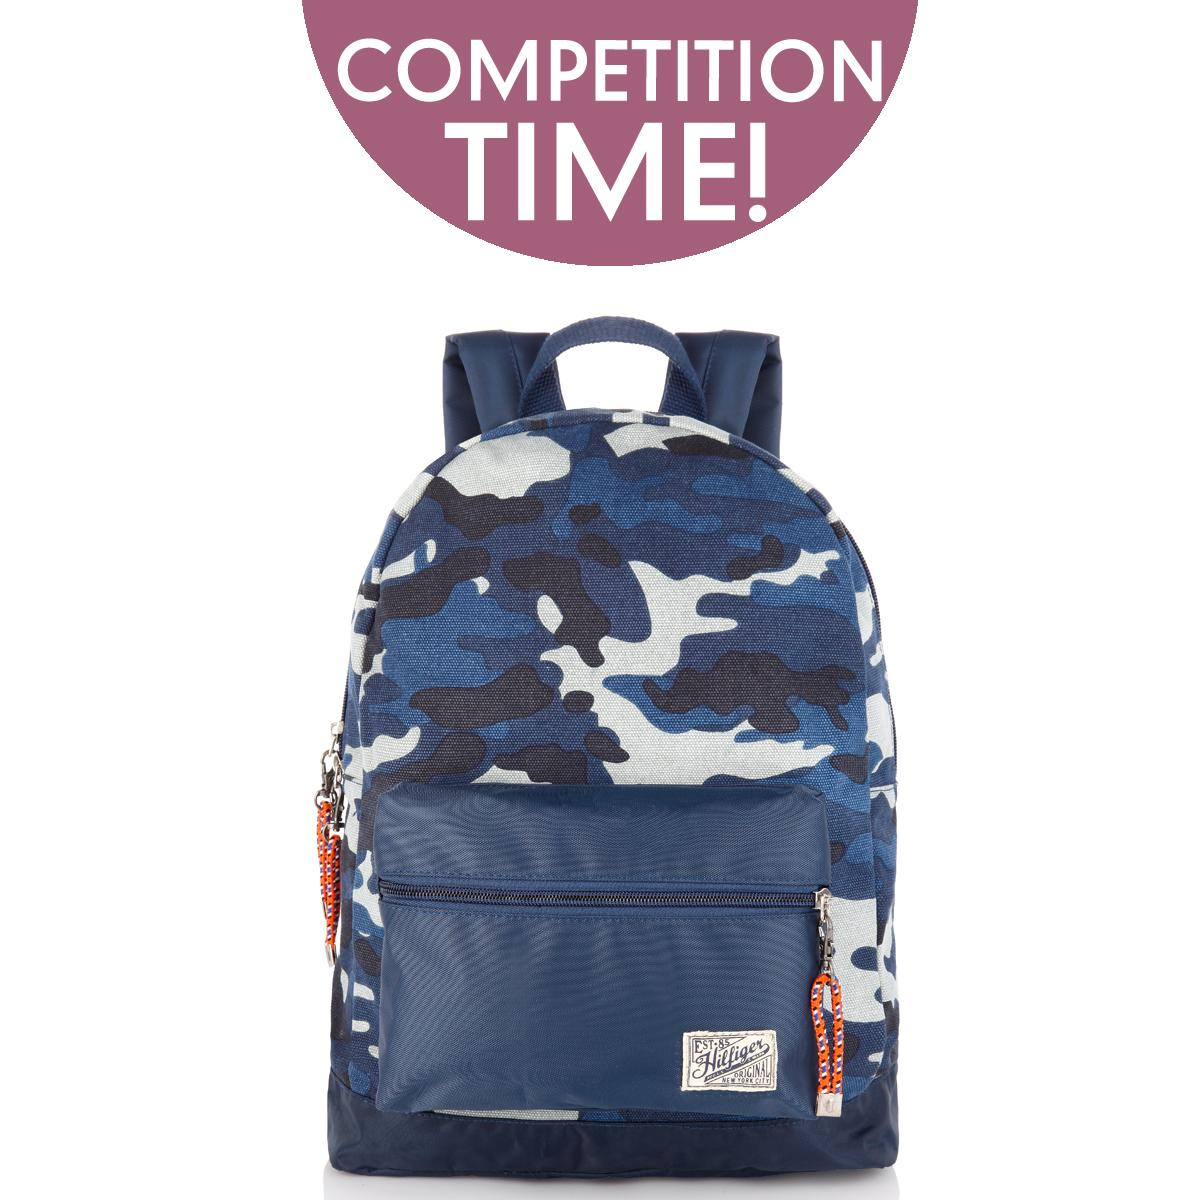 We now sell Tommy Hilfiger in selected Mothercare stores! RT for your chance to win this Tommy Hilfiger  bag. http://t.co/NdCzRw8ewq